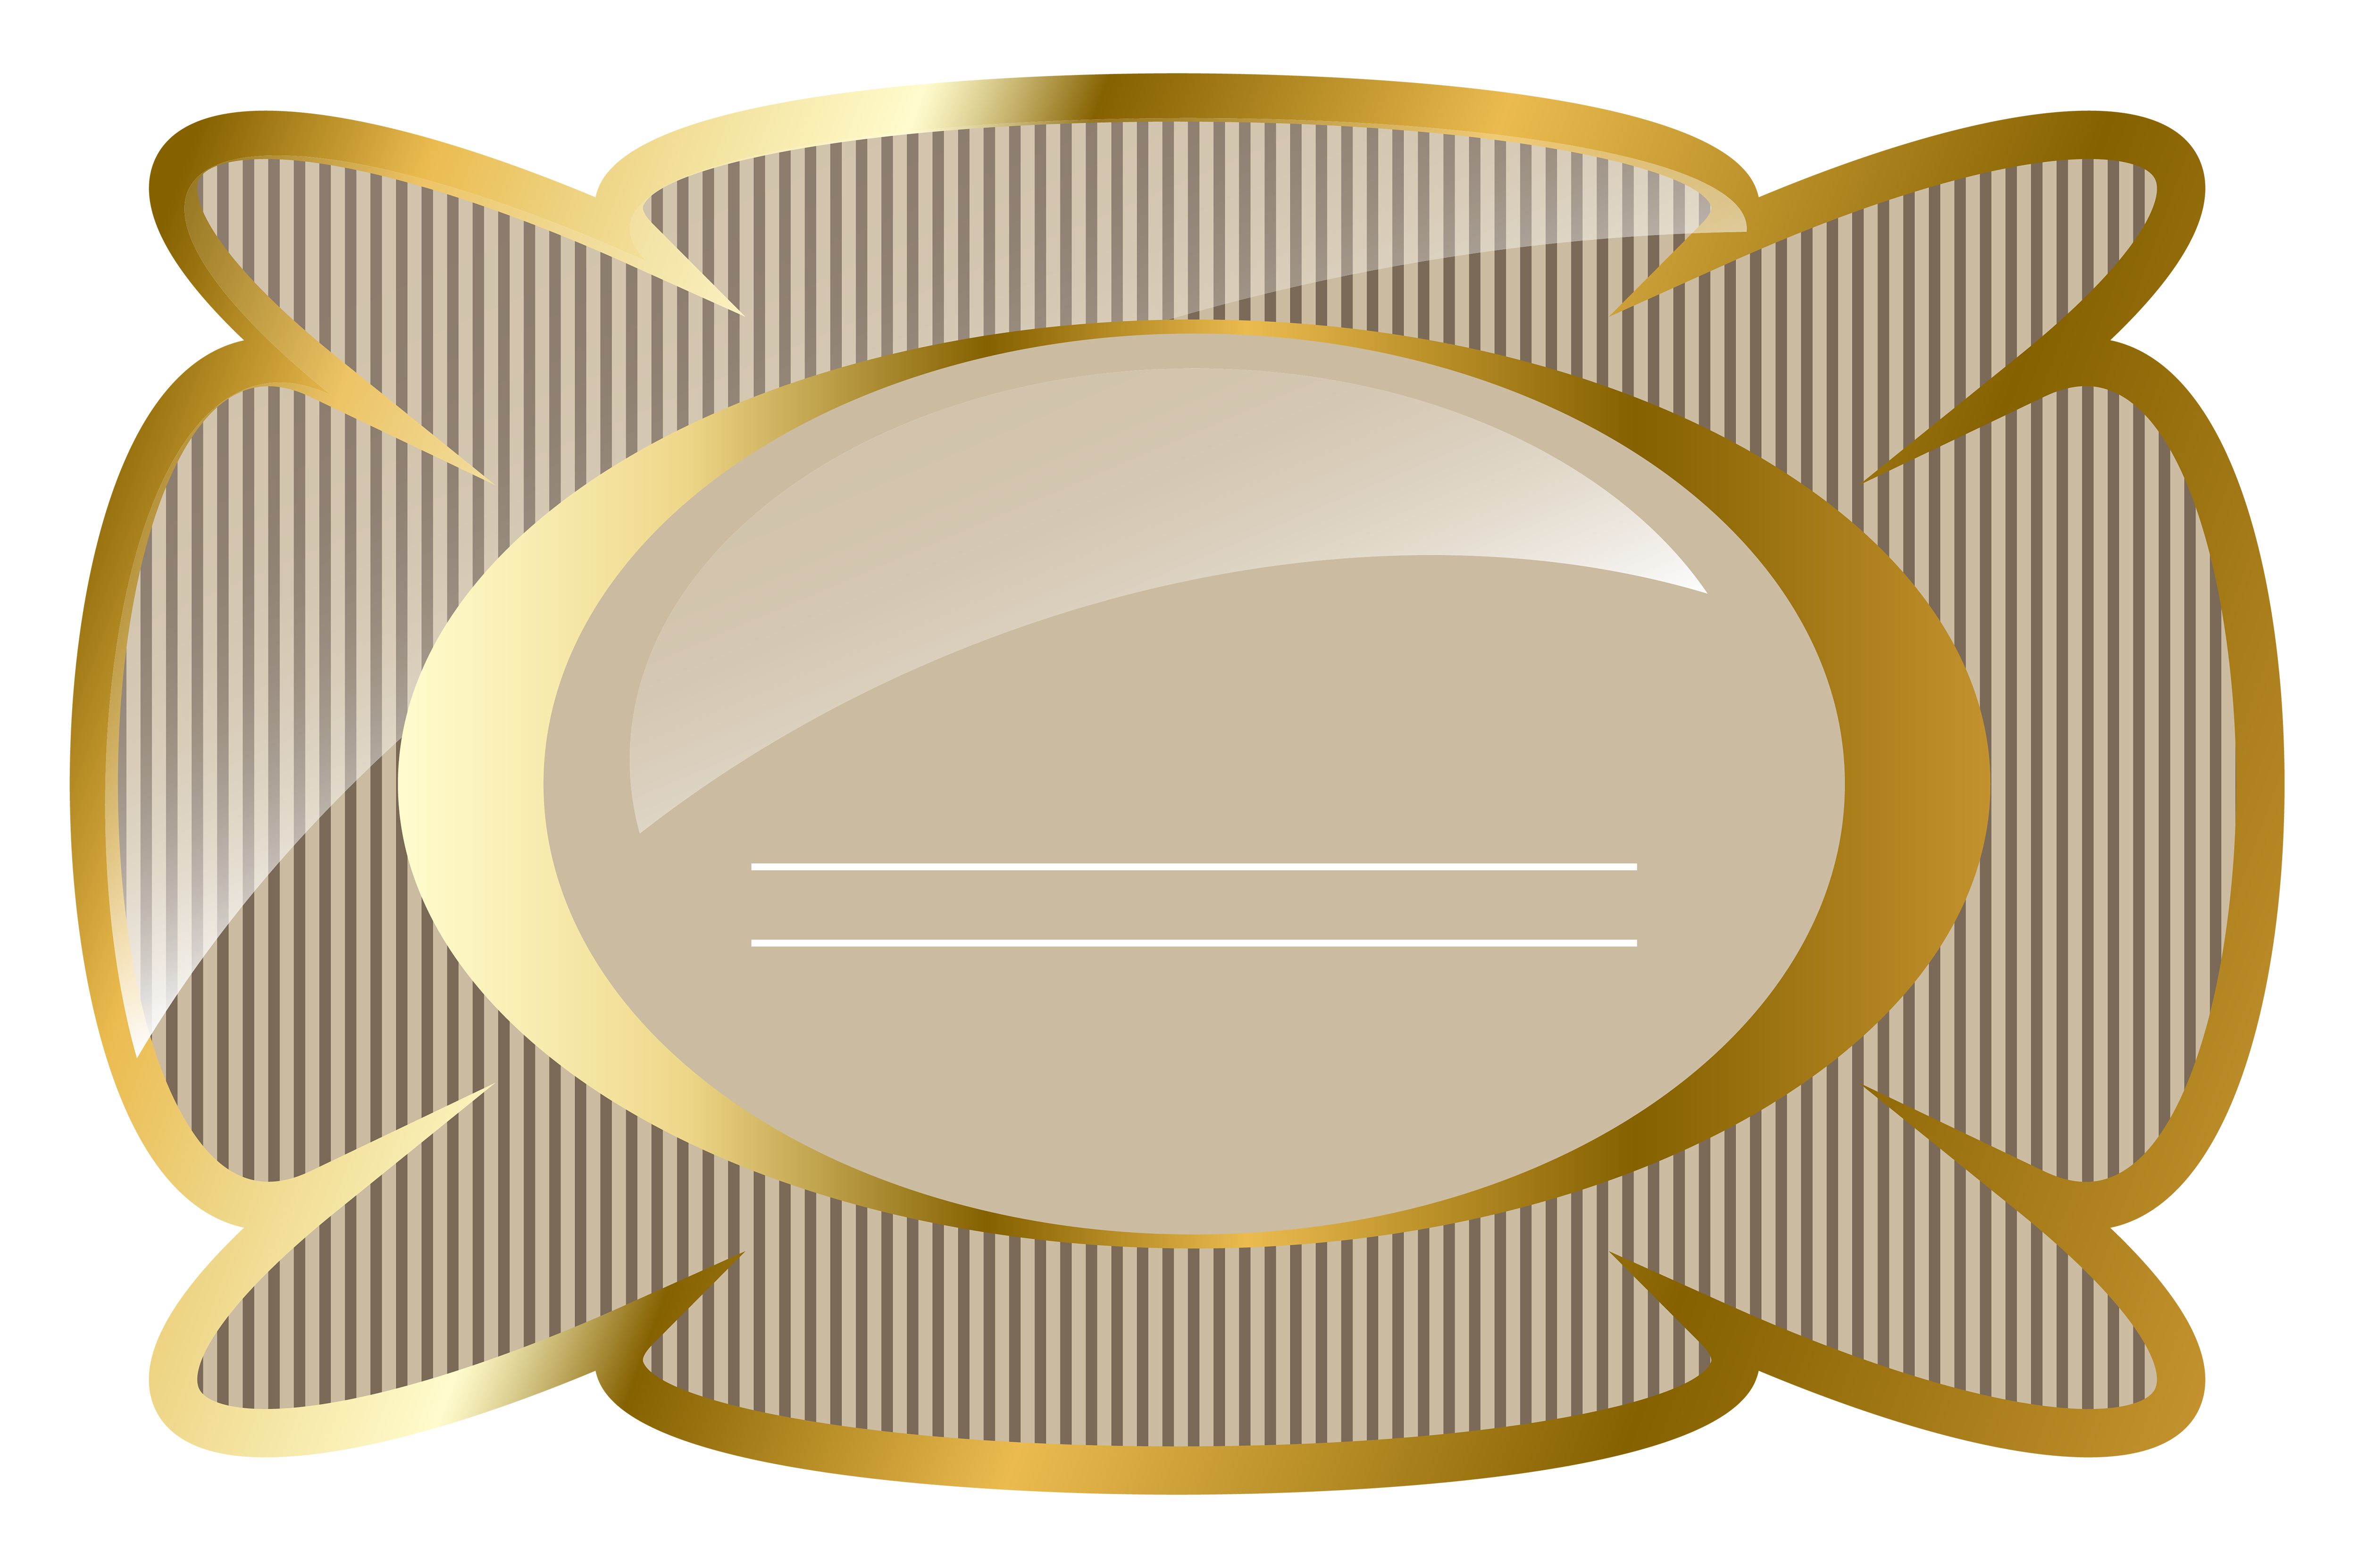 Flags clipart label. Cream and gold luxury